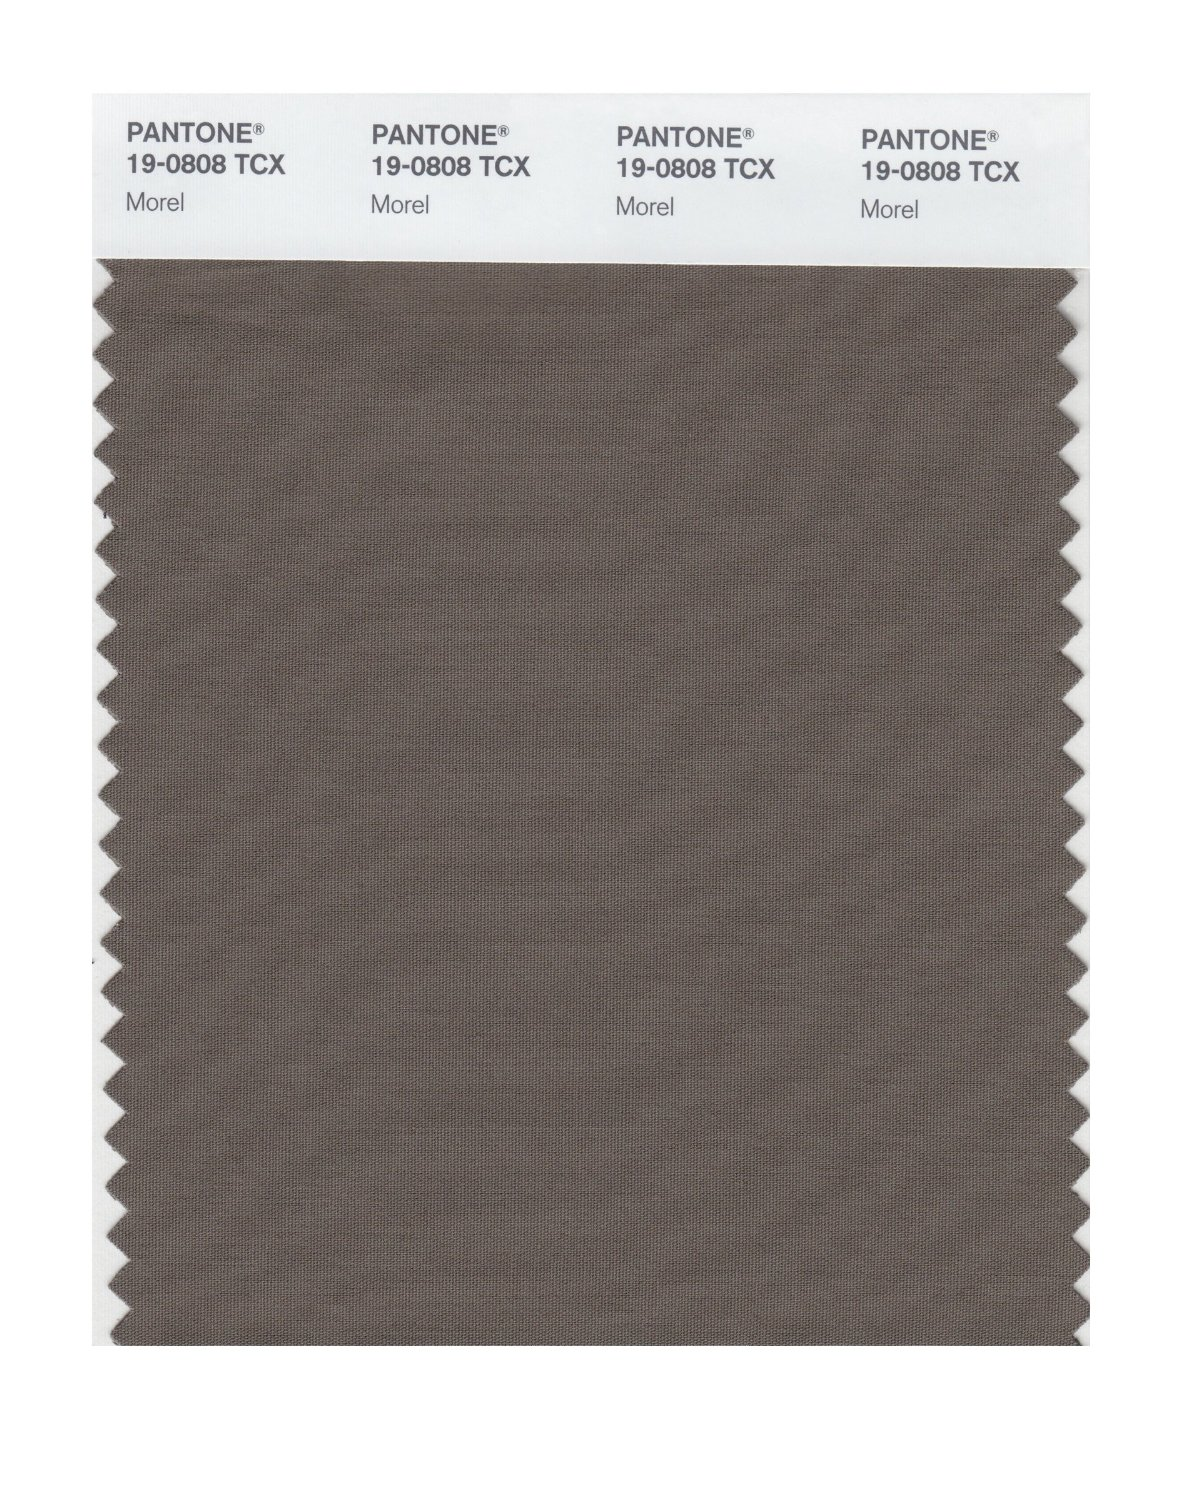 Pantone Smart Swatch 19-0808 Morel